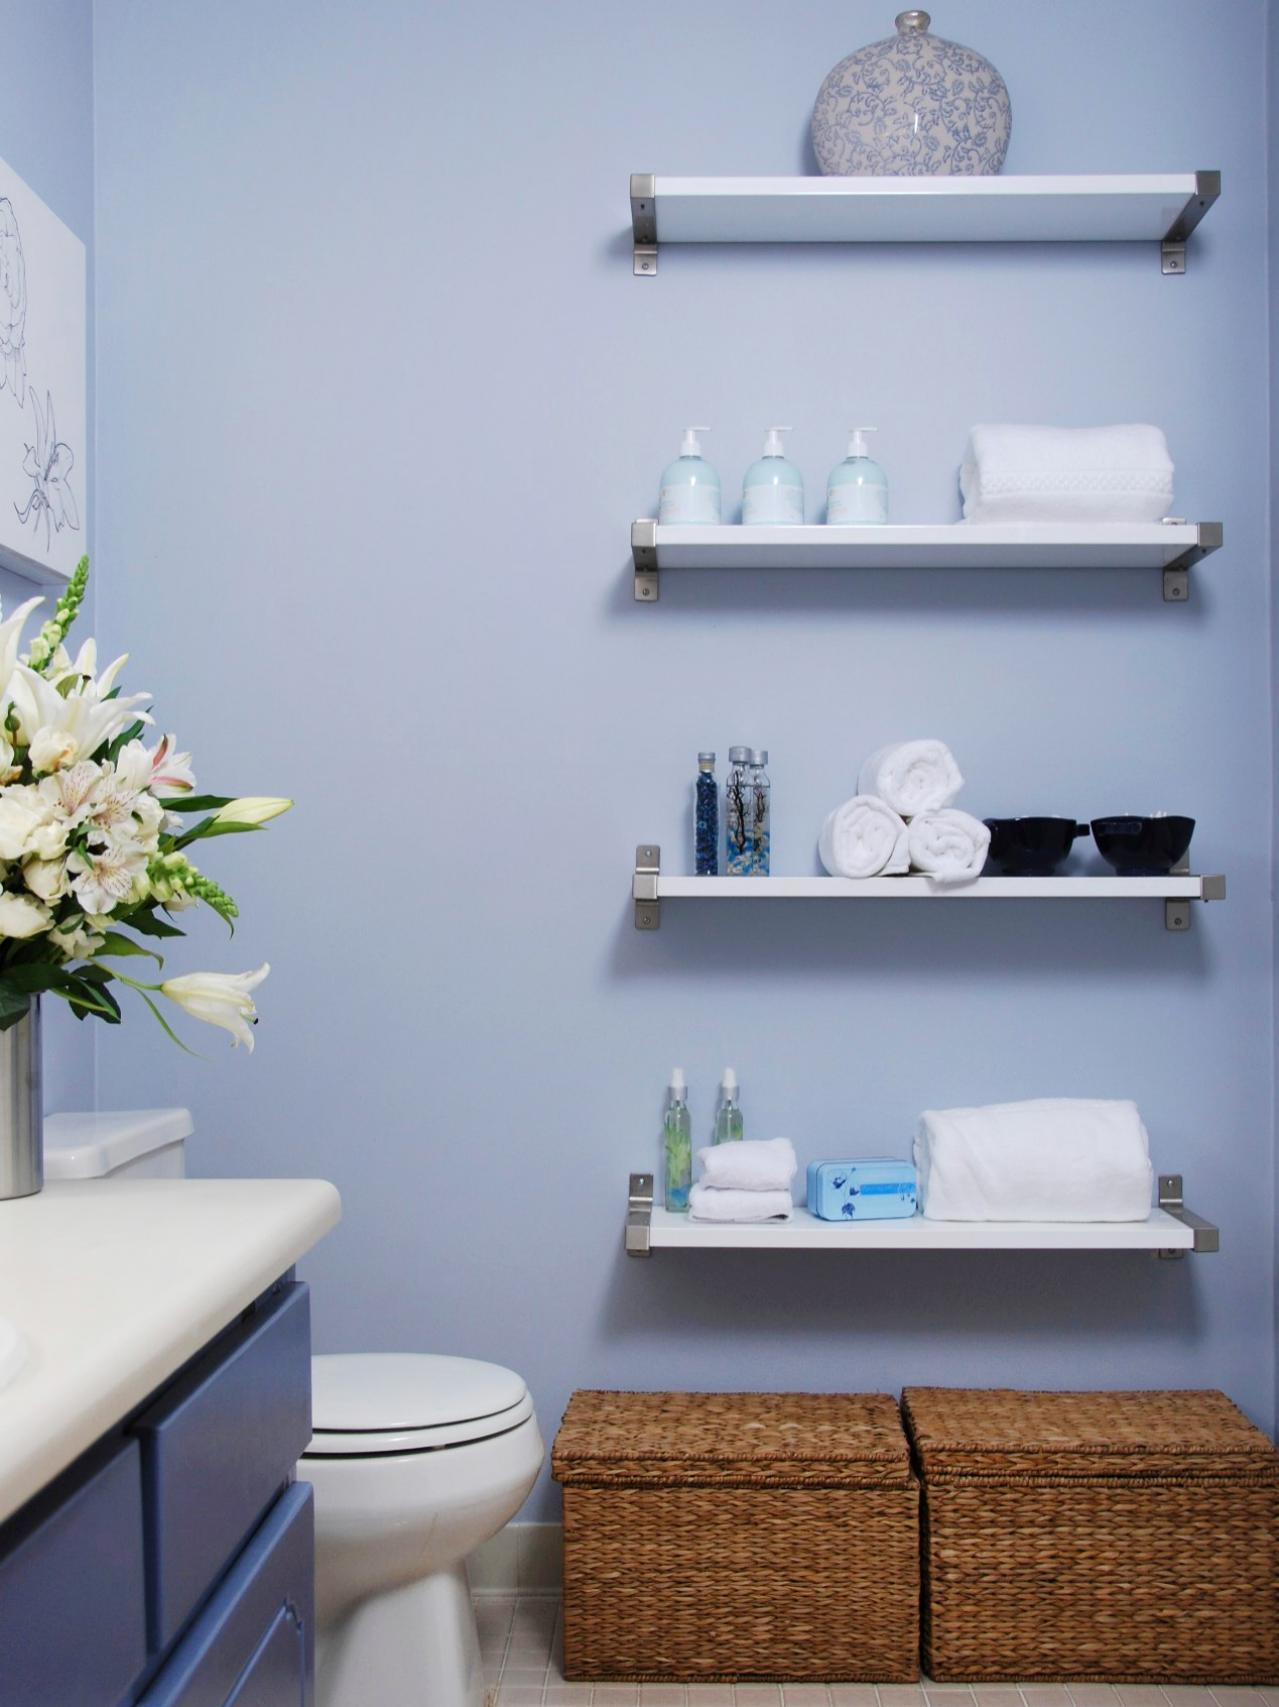 ways decorate with floating shelves decorating bathroom white contemporary line blue wall yorkshire oak beams corner stand vinyl tile cement floor countertop basin cabinet mantel